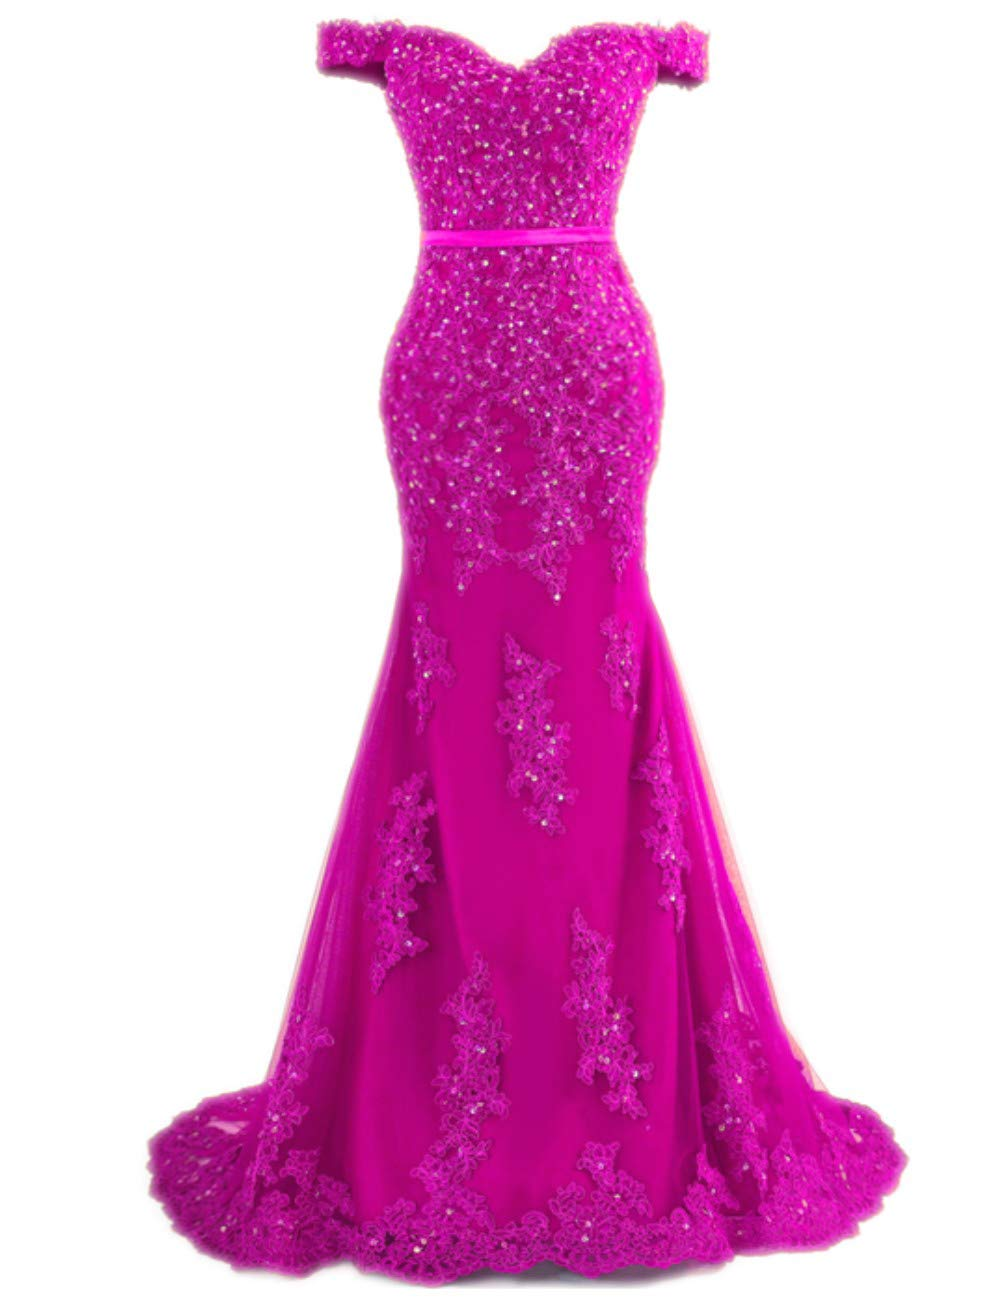 Available at Amazon: MariRobe Women's Beaded Lace Appliques Evening Dress Mermaid Party Dress Off The Shoulder Evening Gown